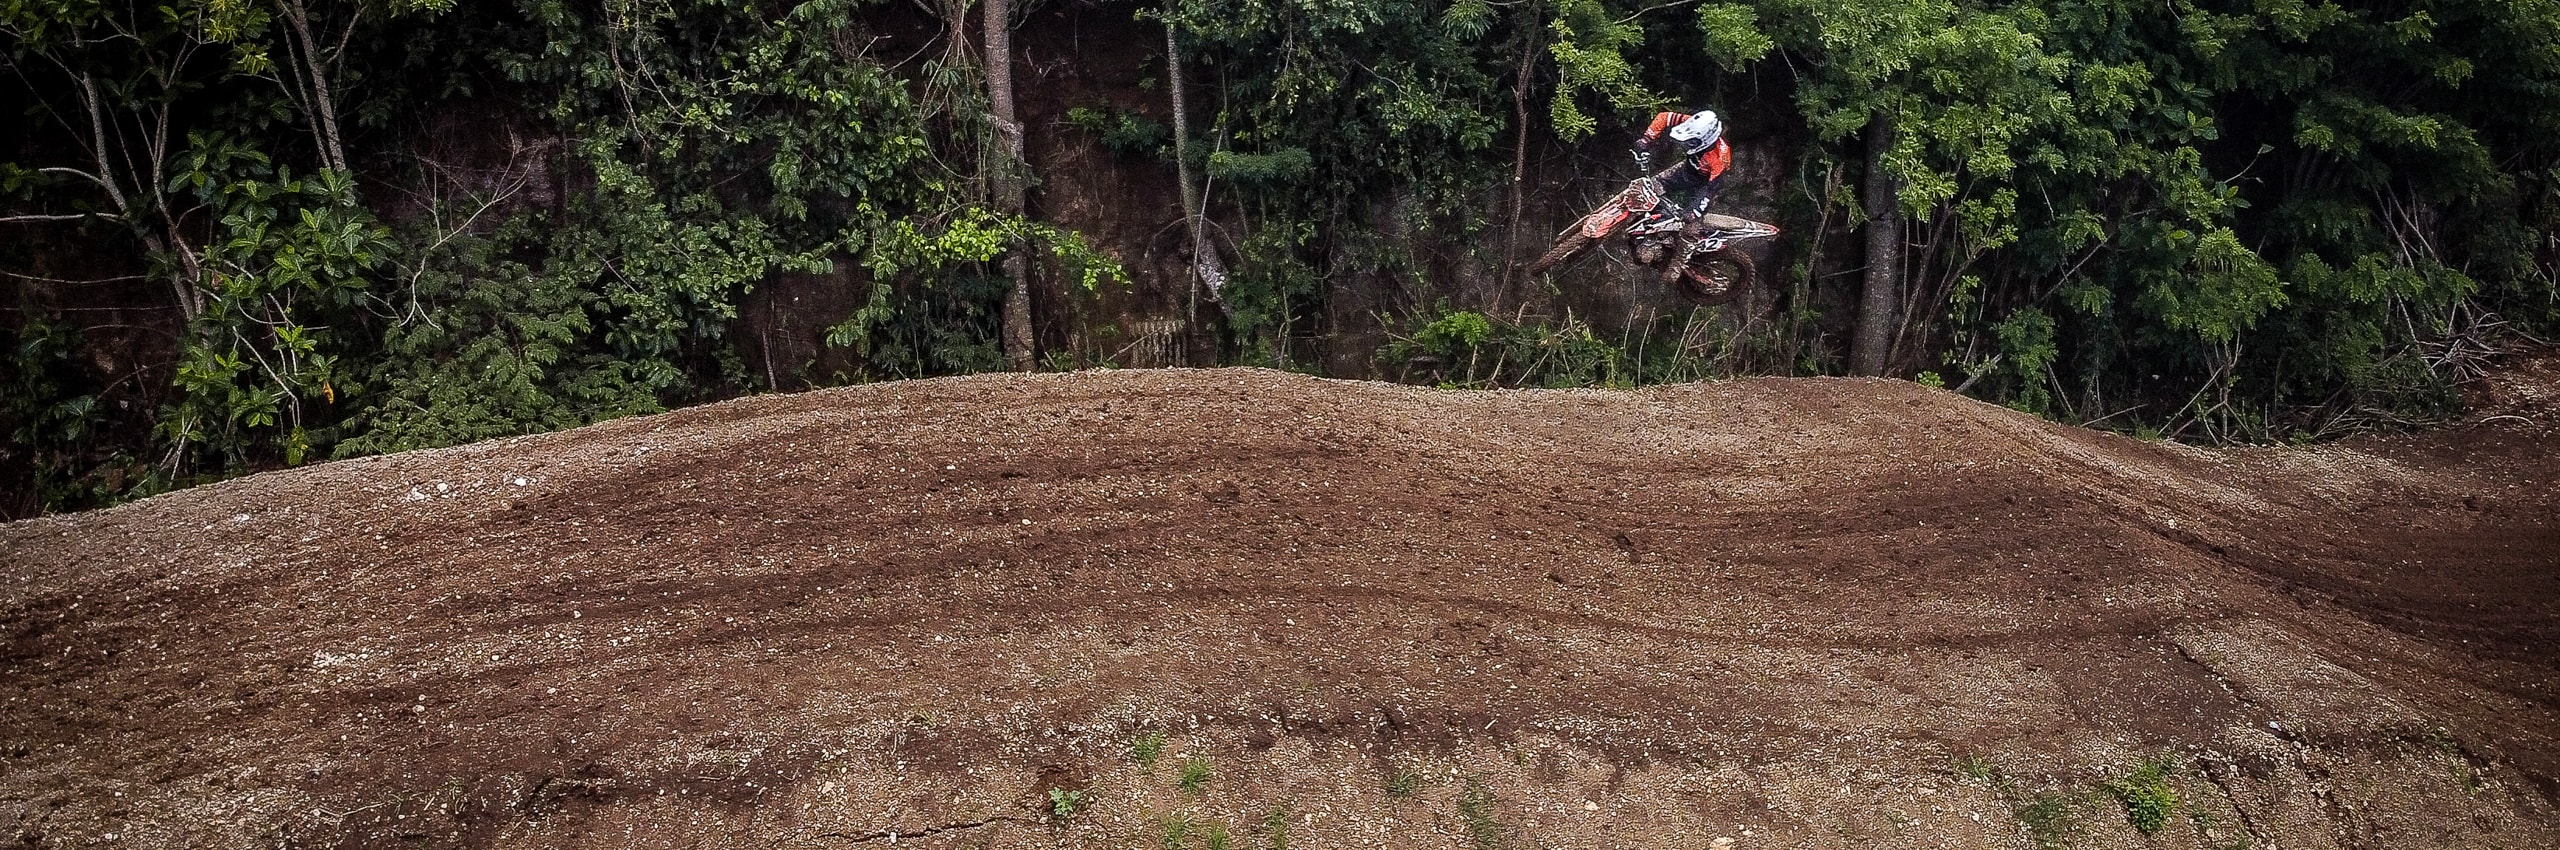 BDB_Motocross_Tracks_Header